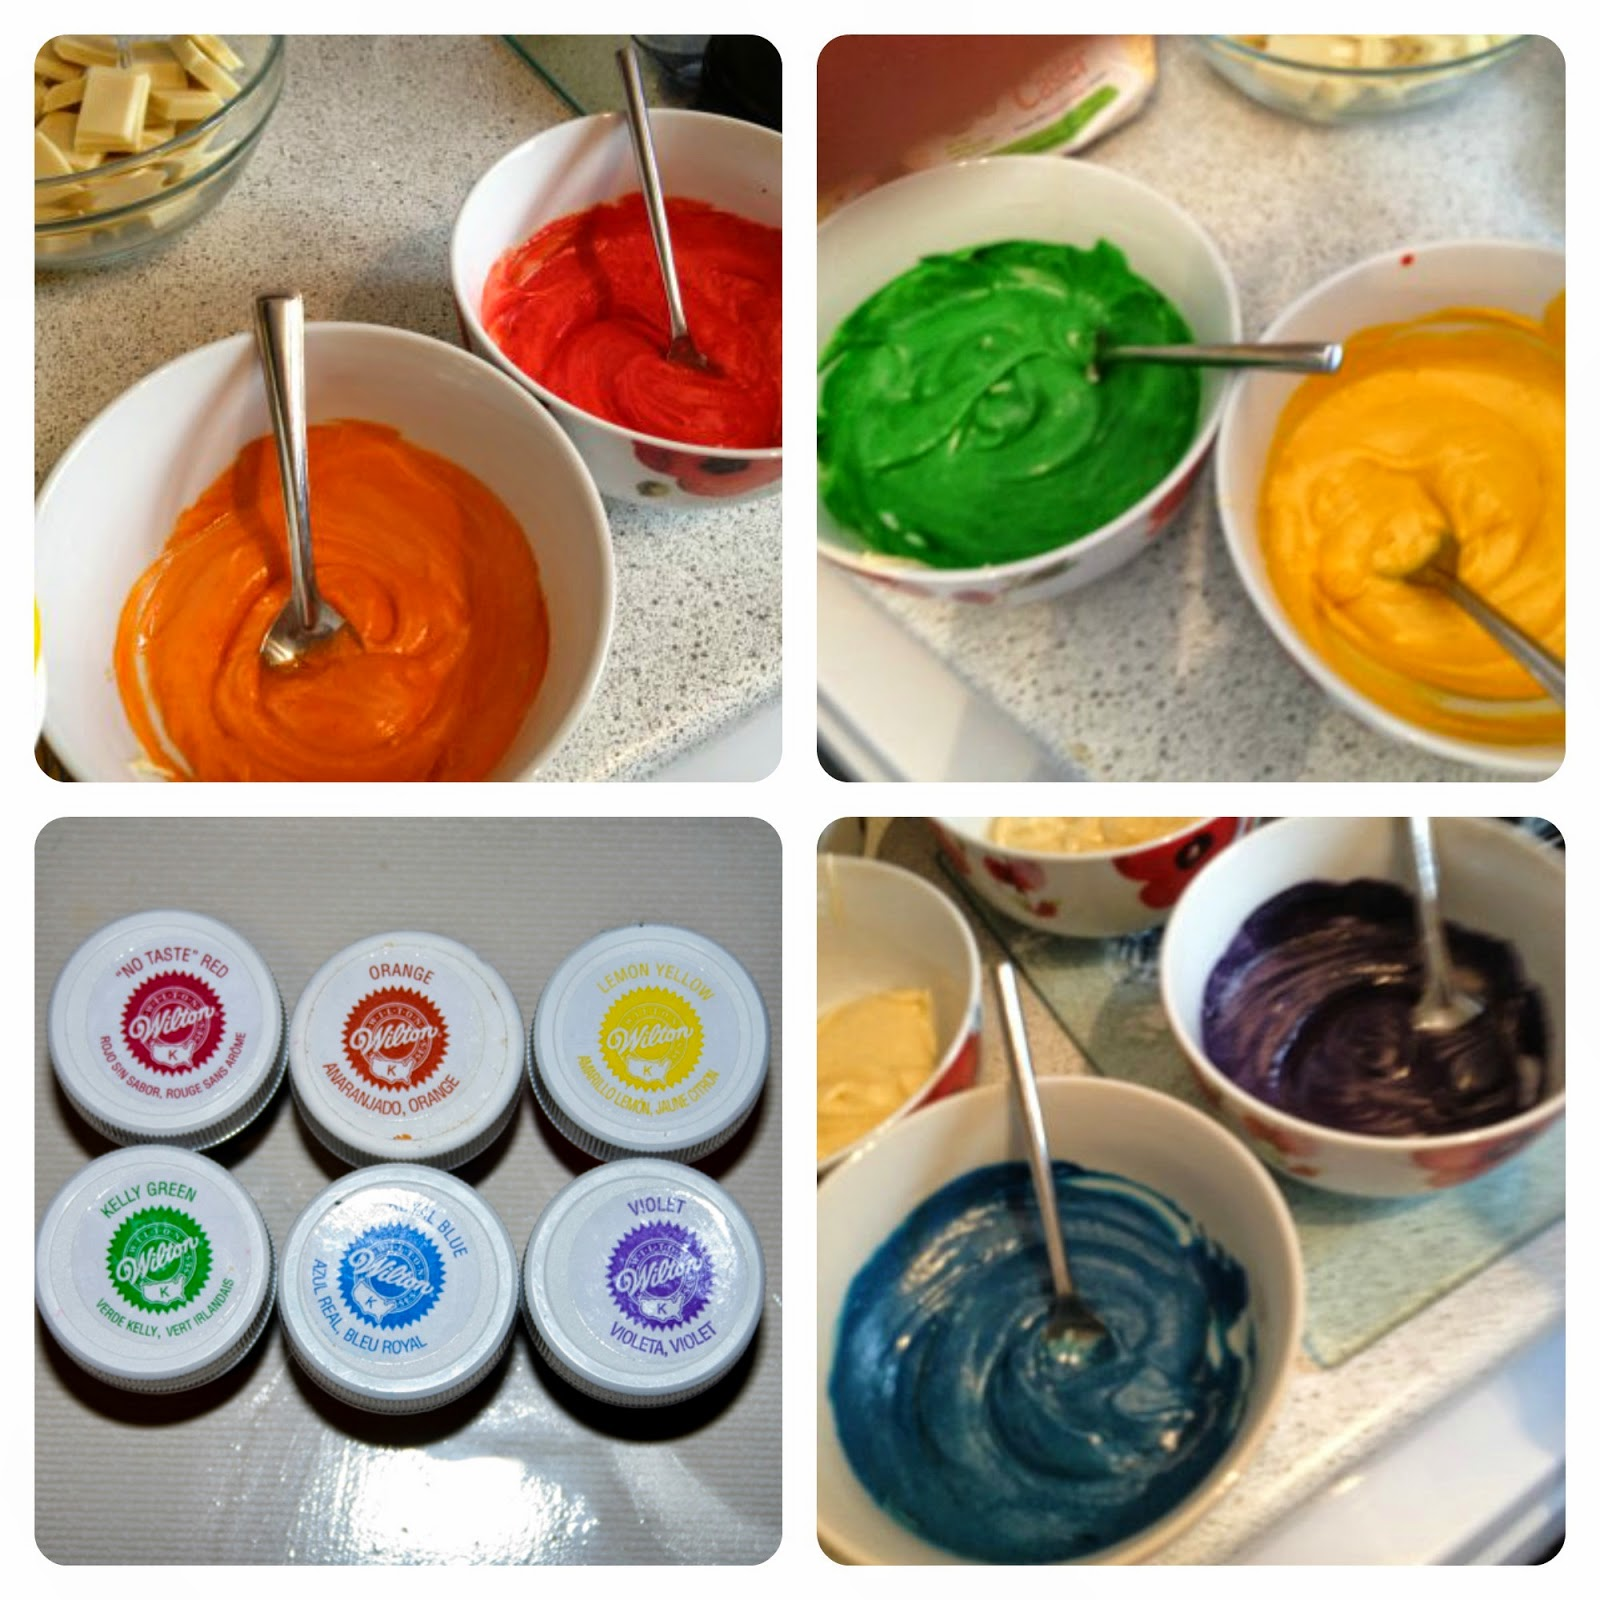 How to make a Rainbow Birthday cake…. |mamasVIB | rainbow birthday cake | birthday cake | rainbow | cooking tips | cake baking tips | bb good of rainbow cake recipe | nabbing tips to make a rainbow cake | colourful baking | wilton gel paste icing | wilton icing rainbow colours